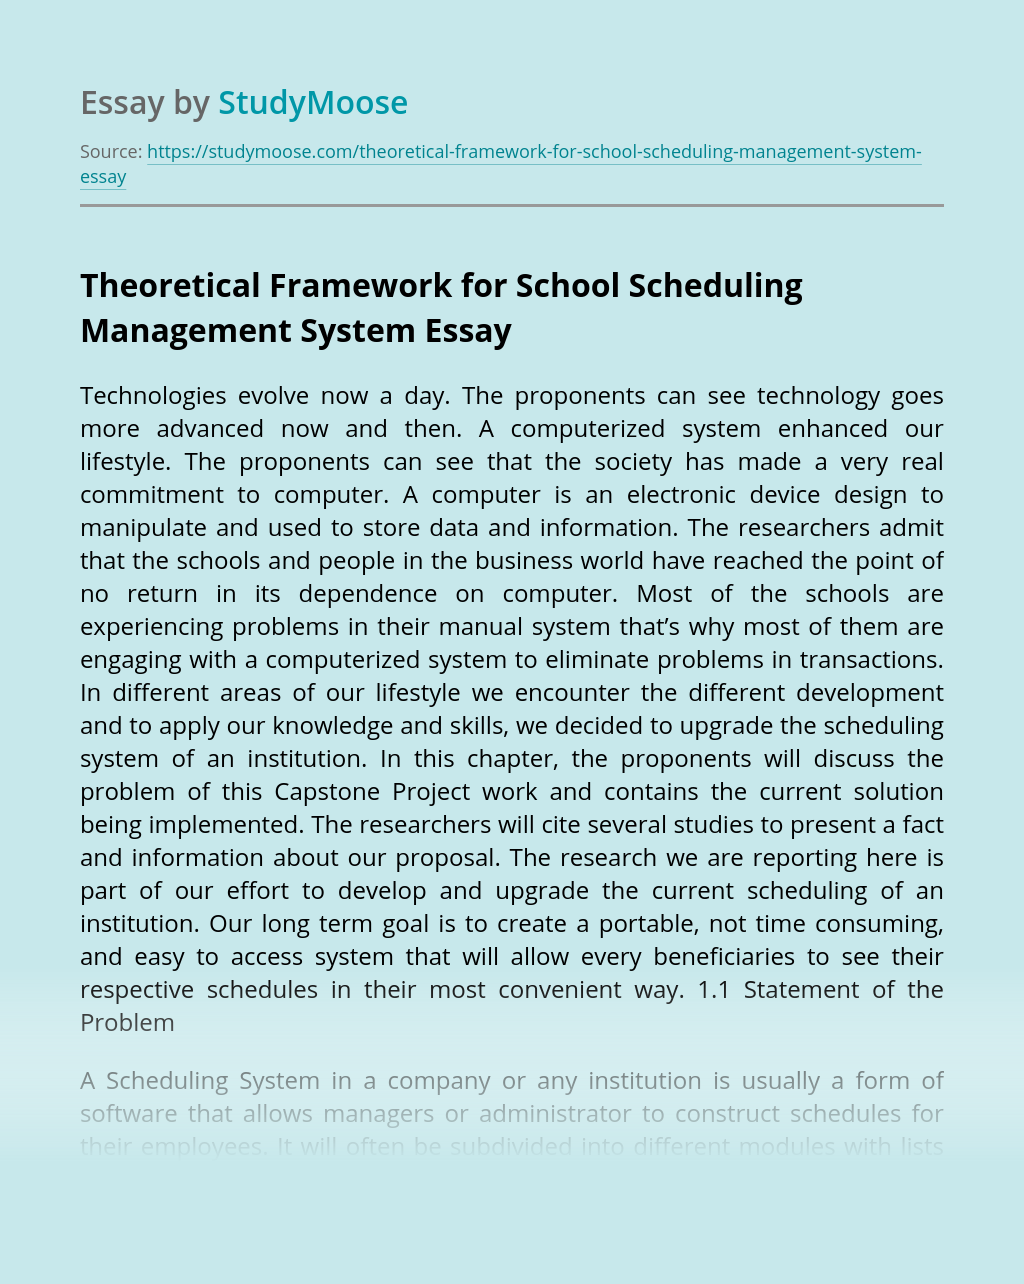 Theoretical Framework for School Scheduling Management System